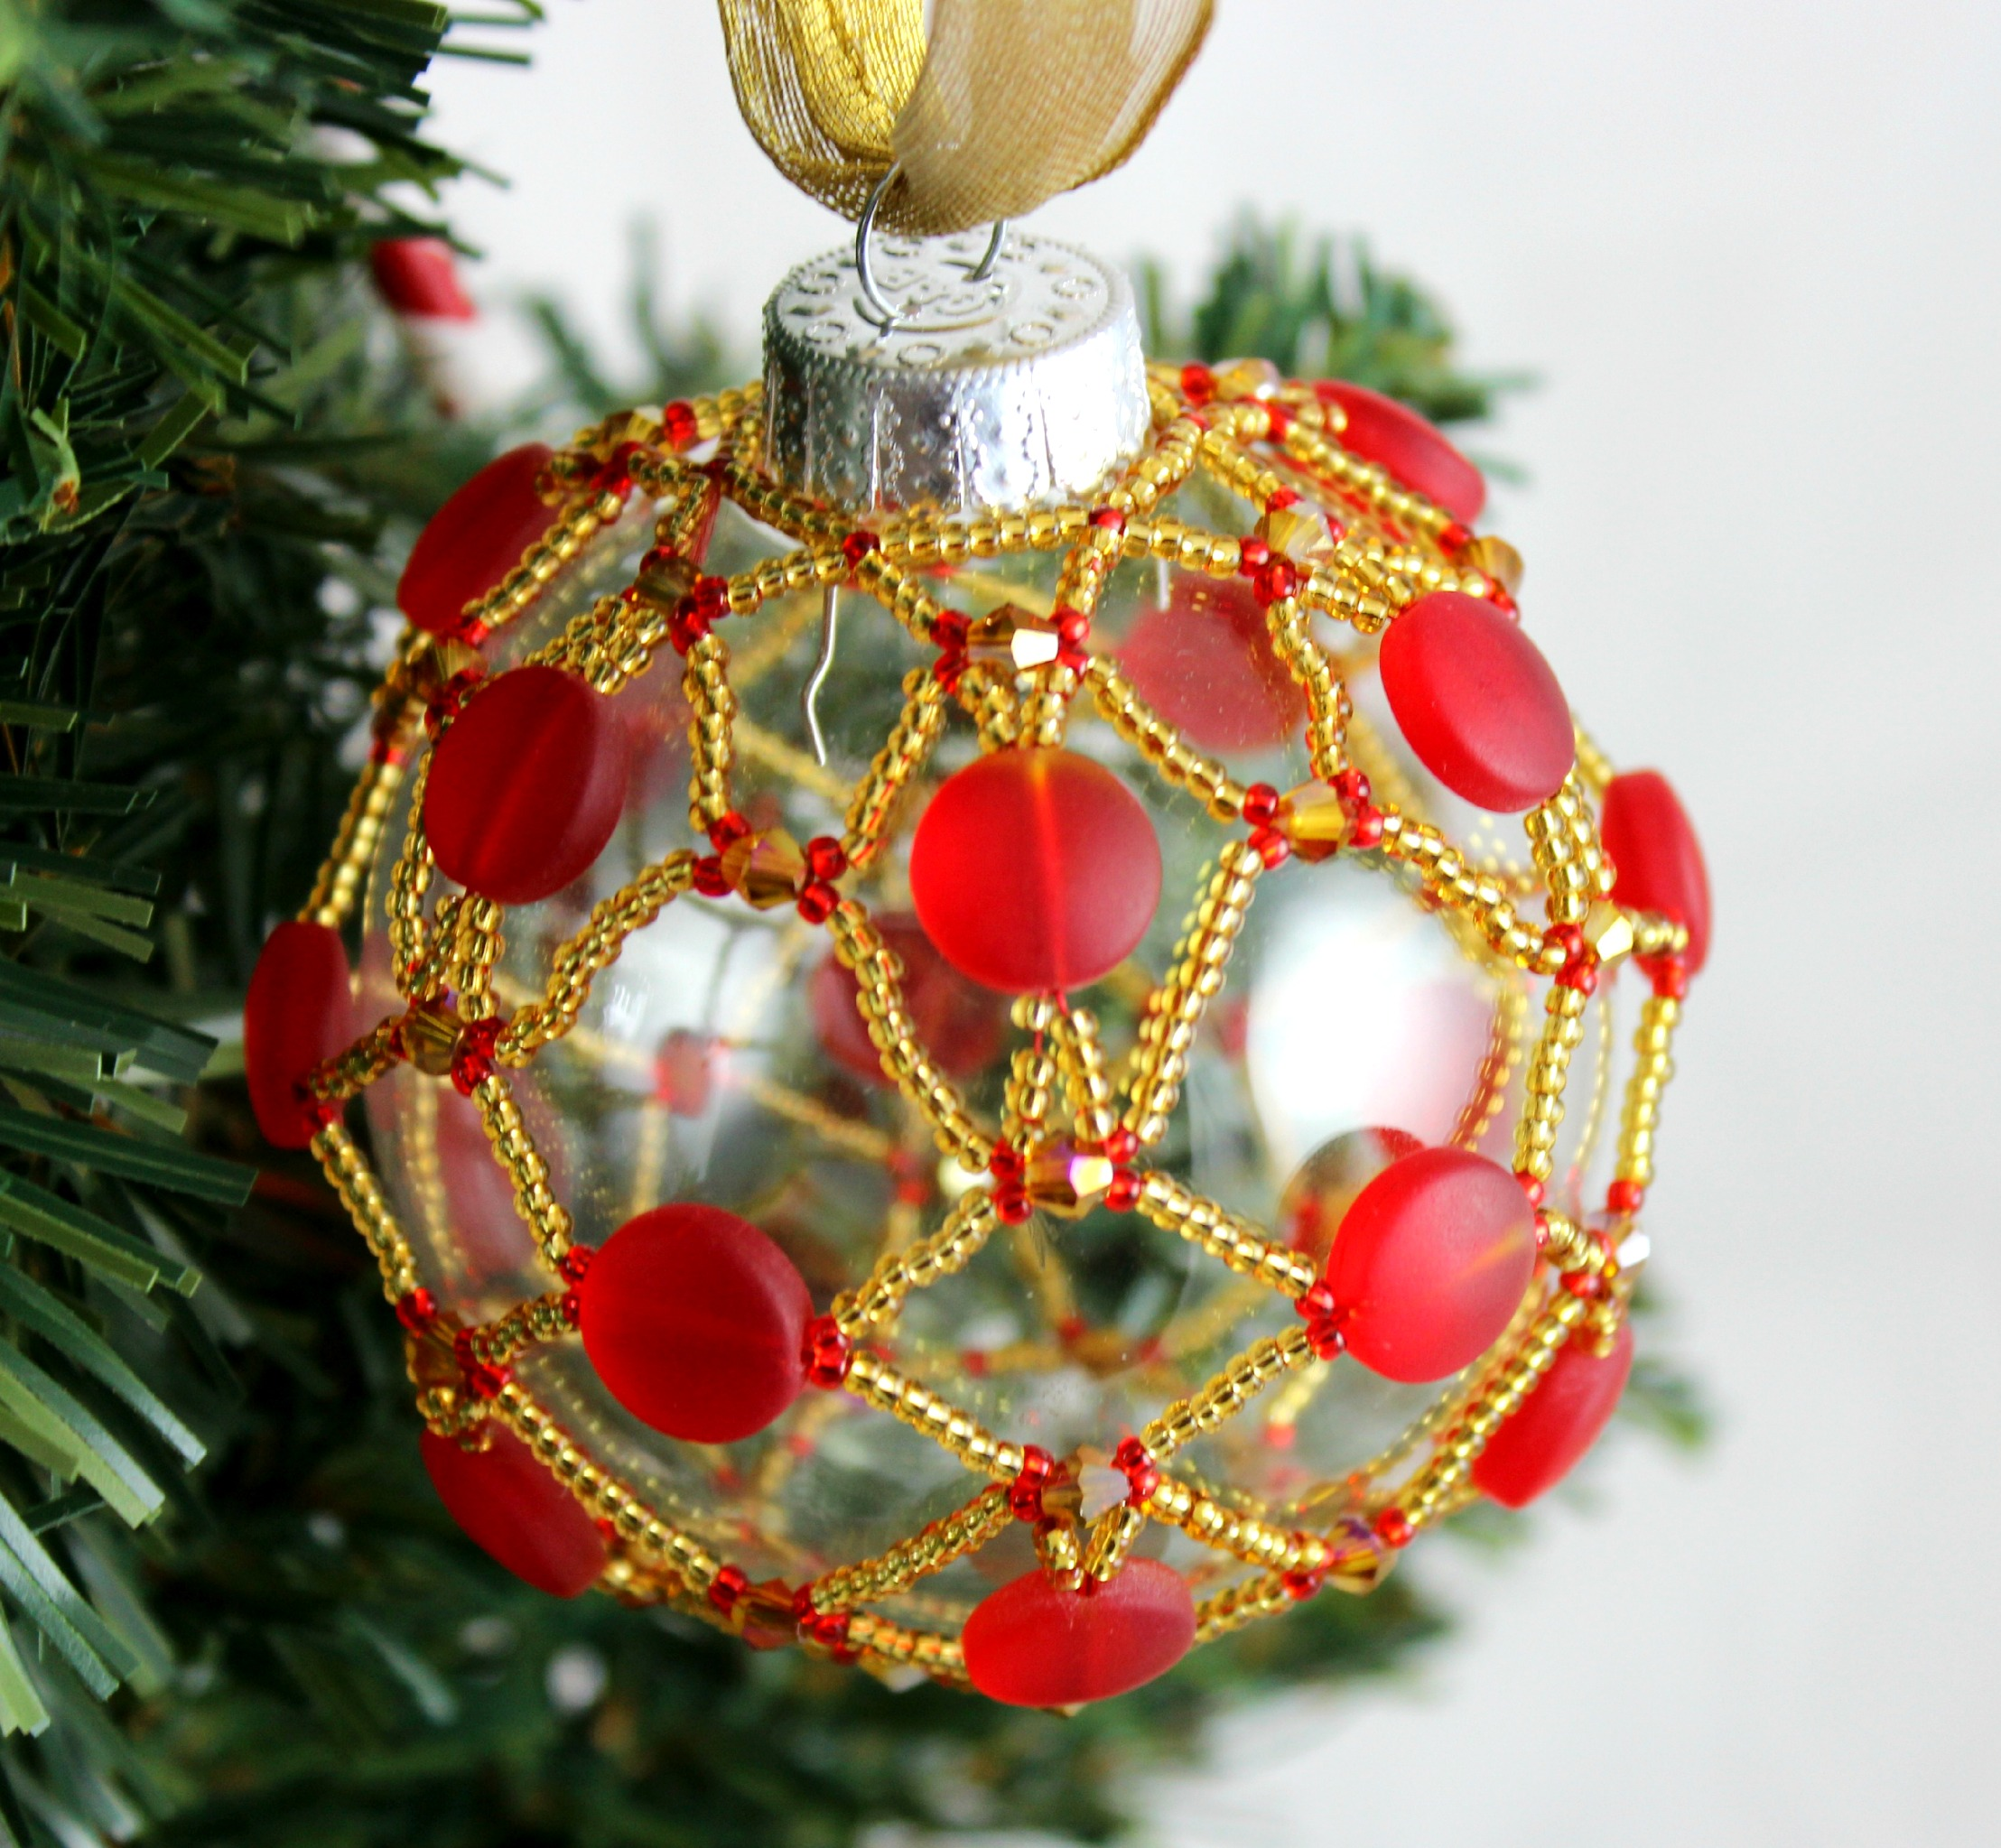 Ornaments by Amy Severino